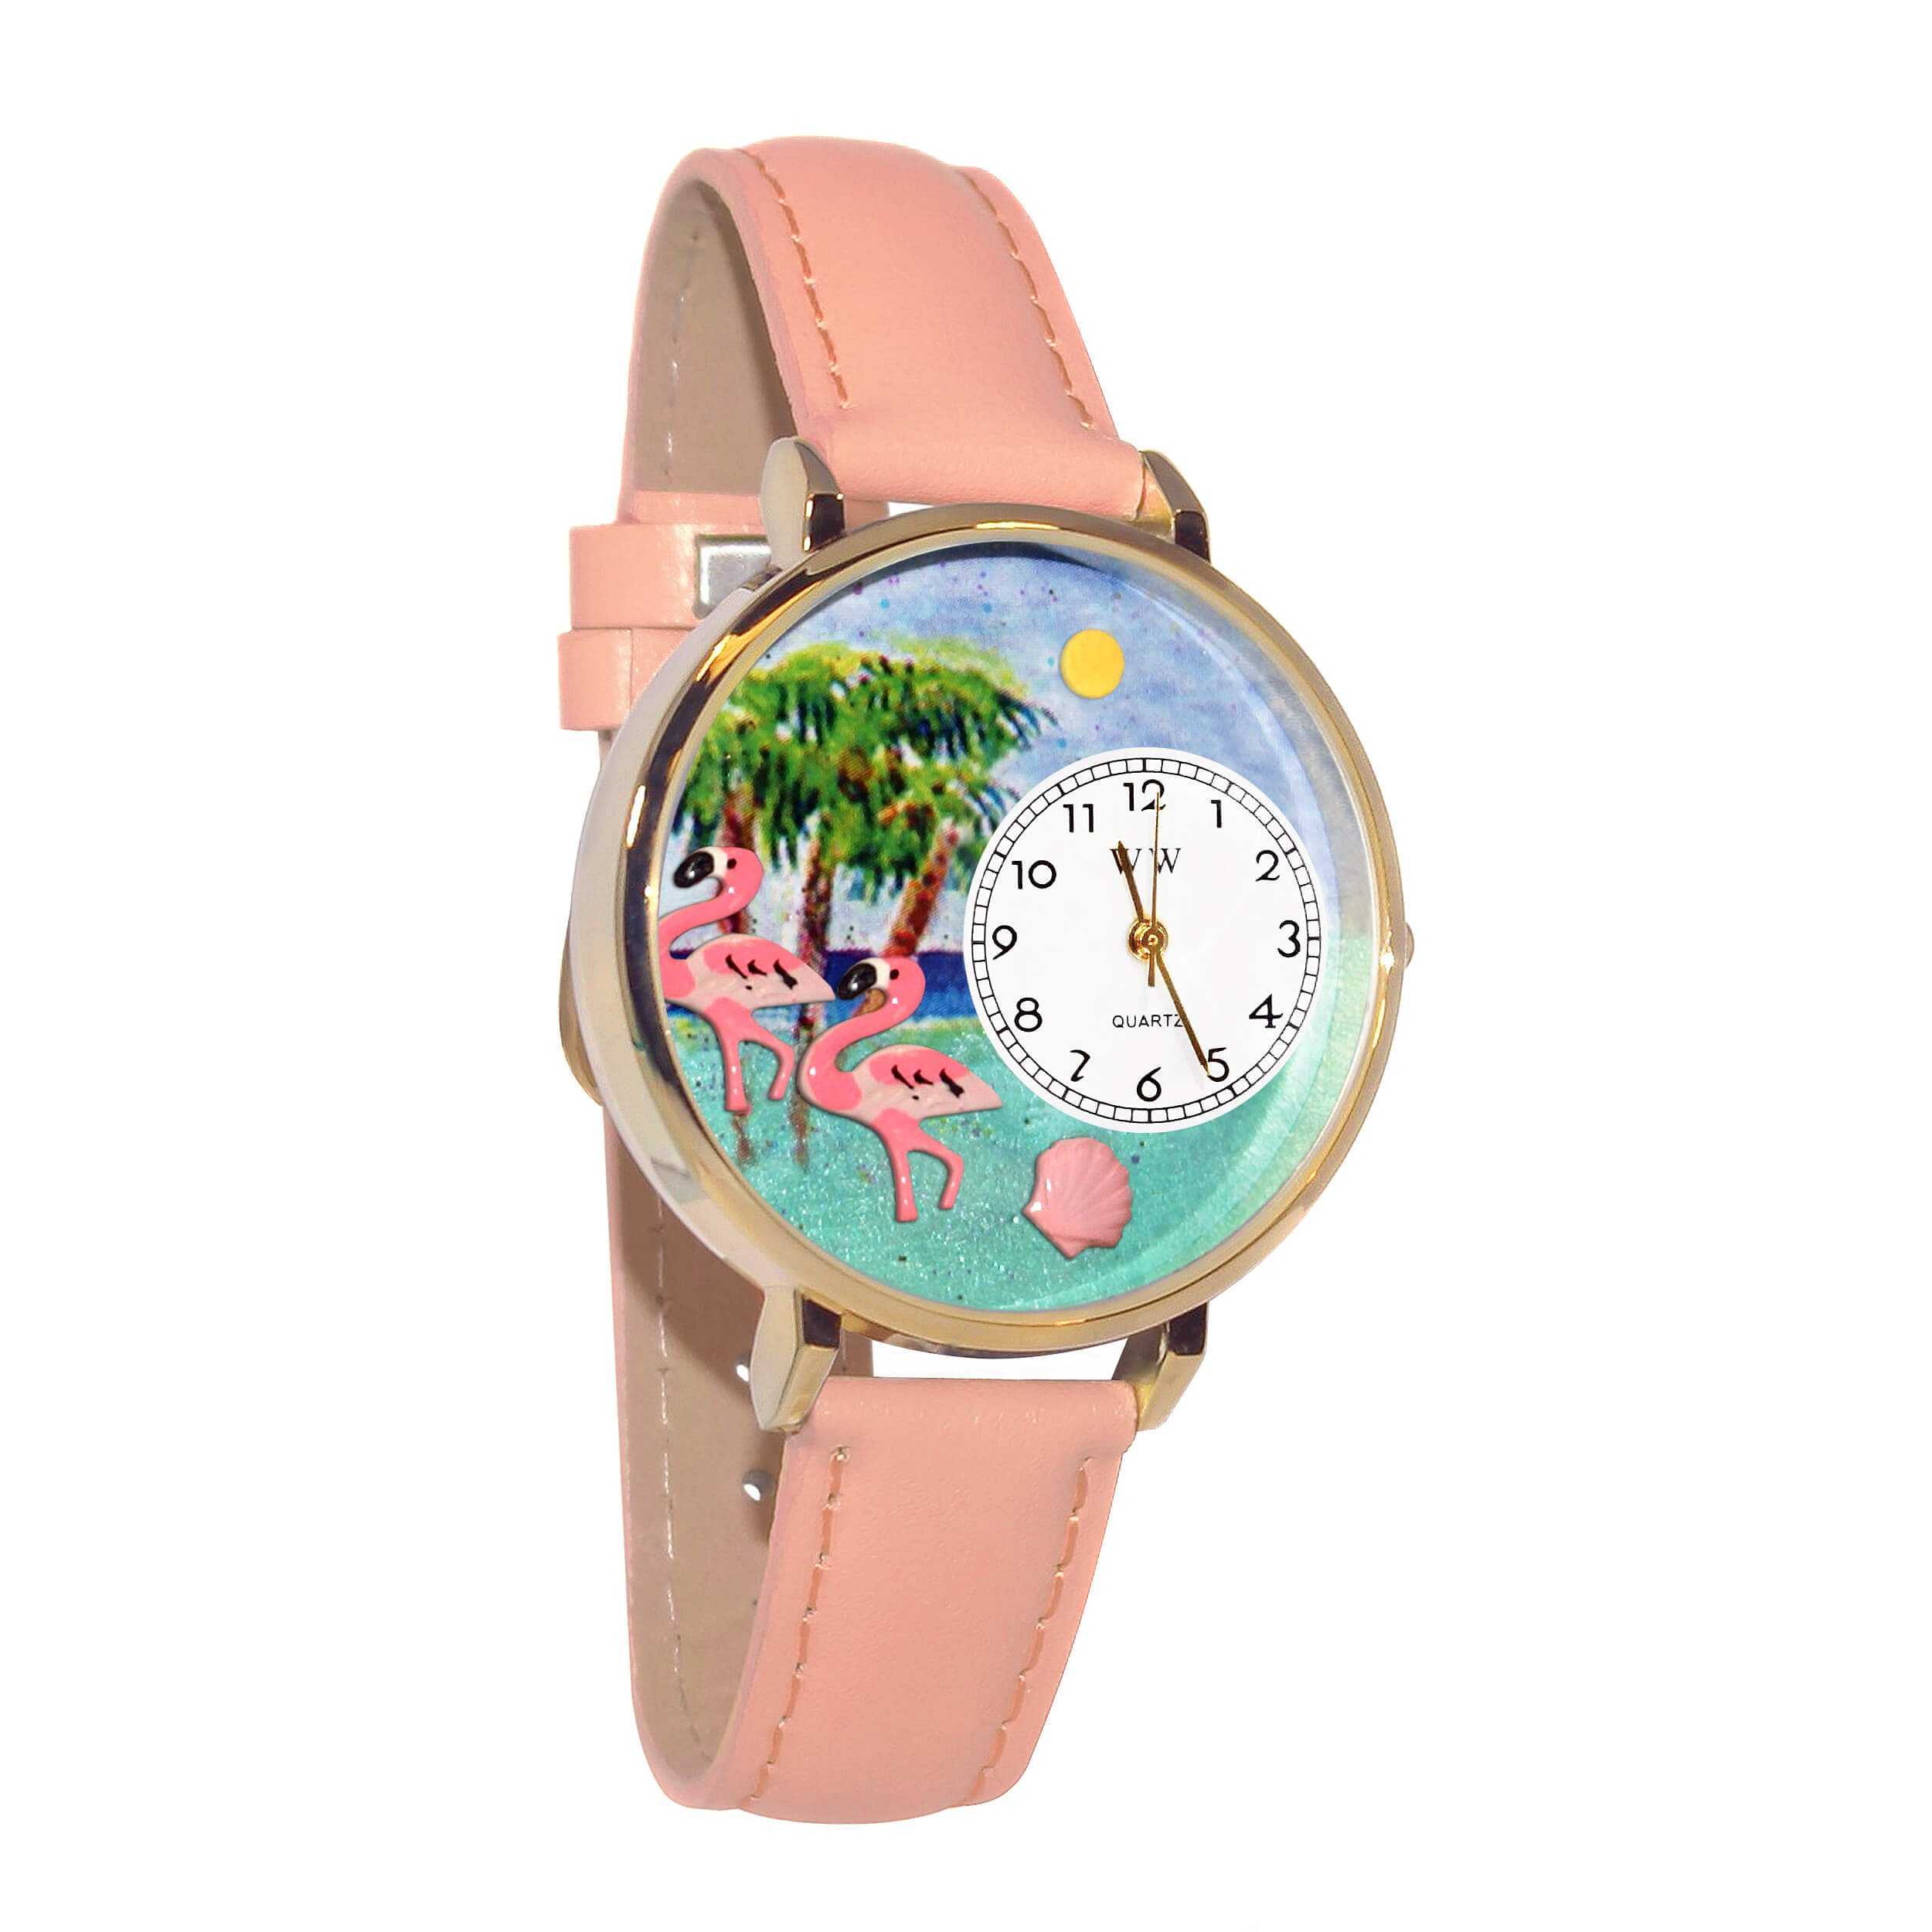 Whimsical Watches Women's G0150001 Flamingo Pink Leather Watch by Whimsical Watches